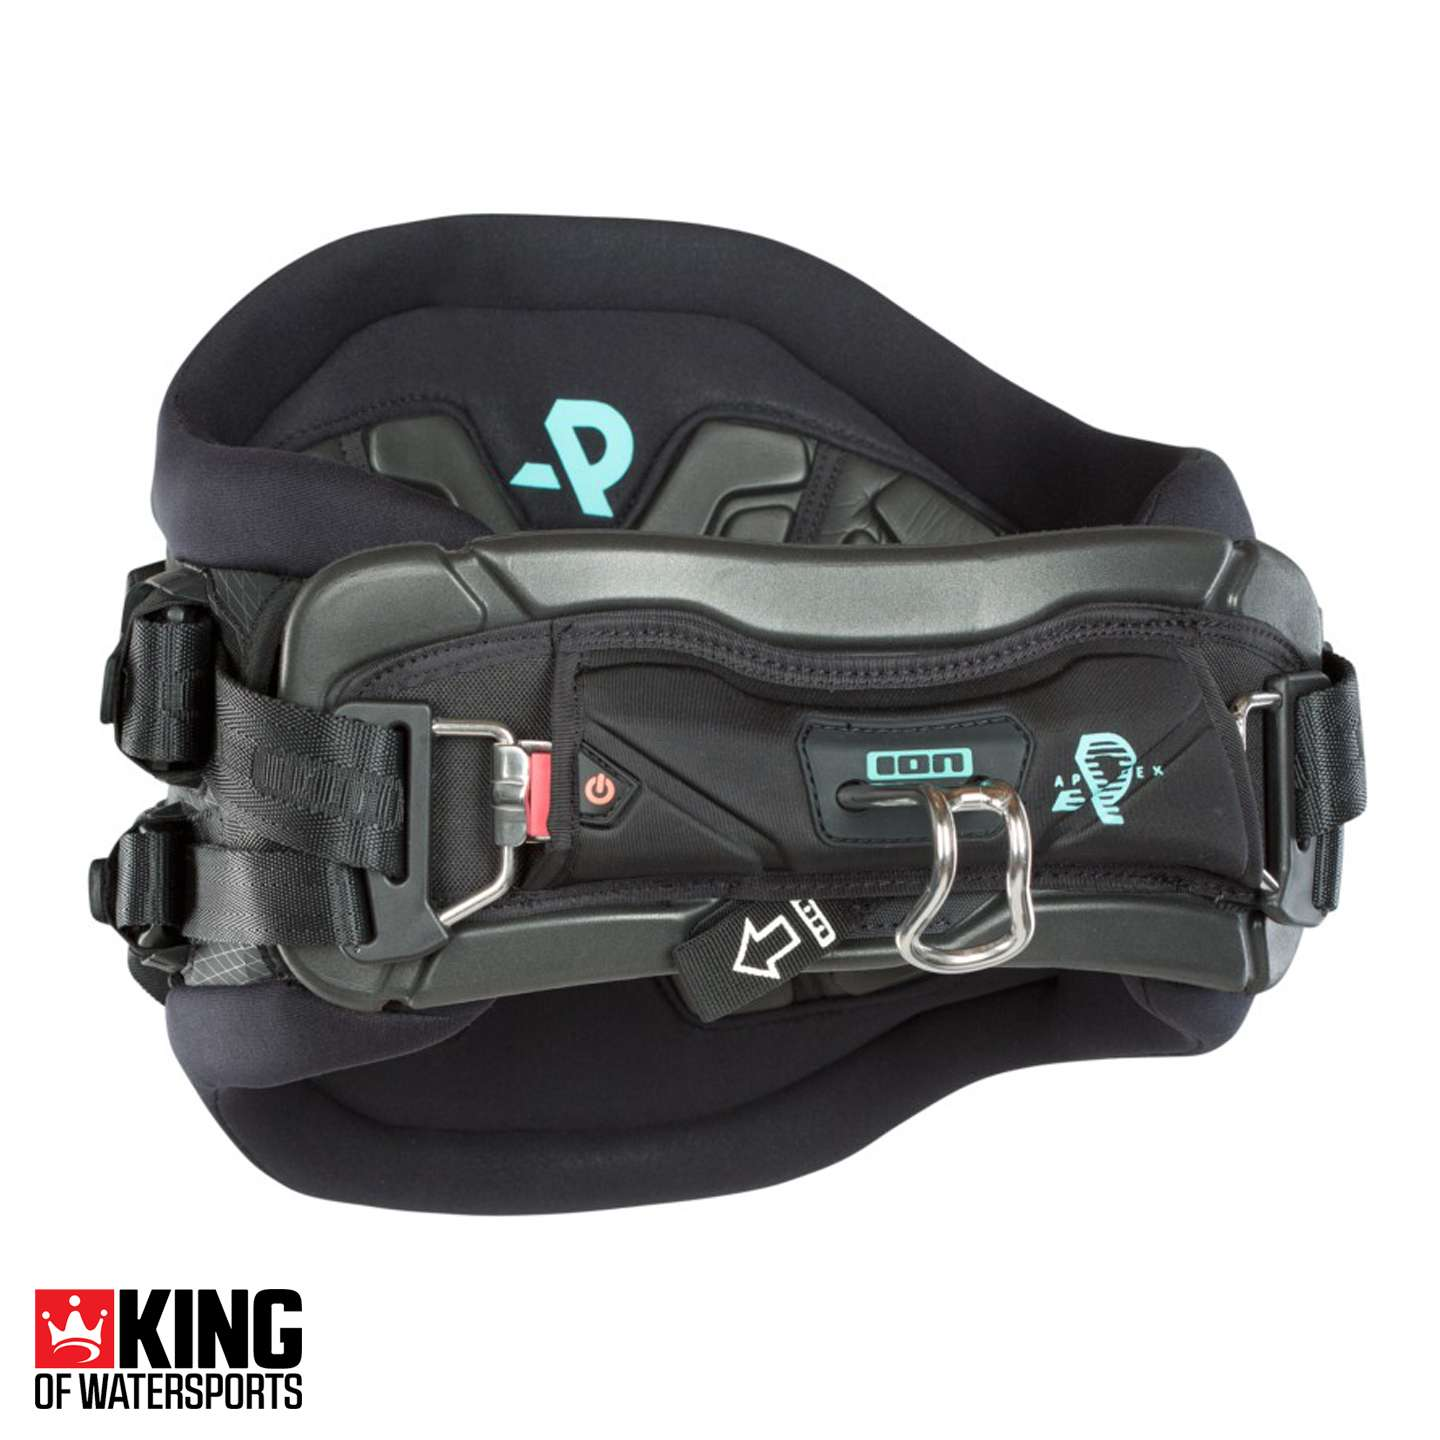 ion apex waist harness 2018 alt1 zoom ion apex kite waist harness 2018 king of watersports